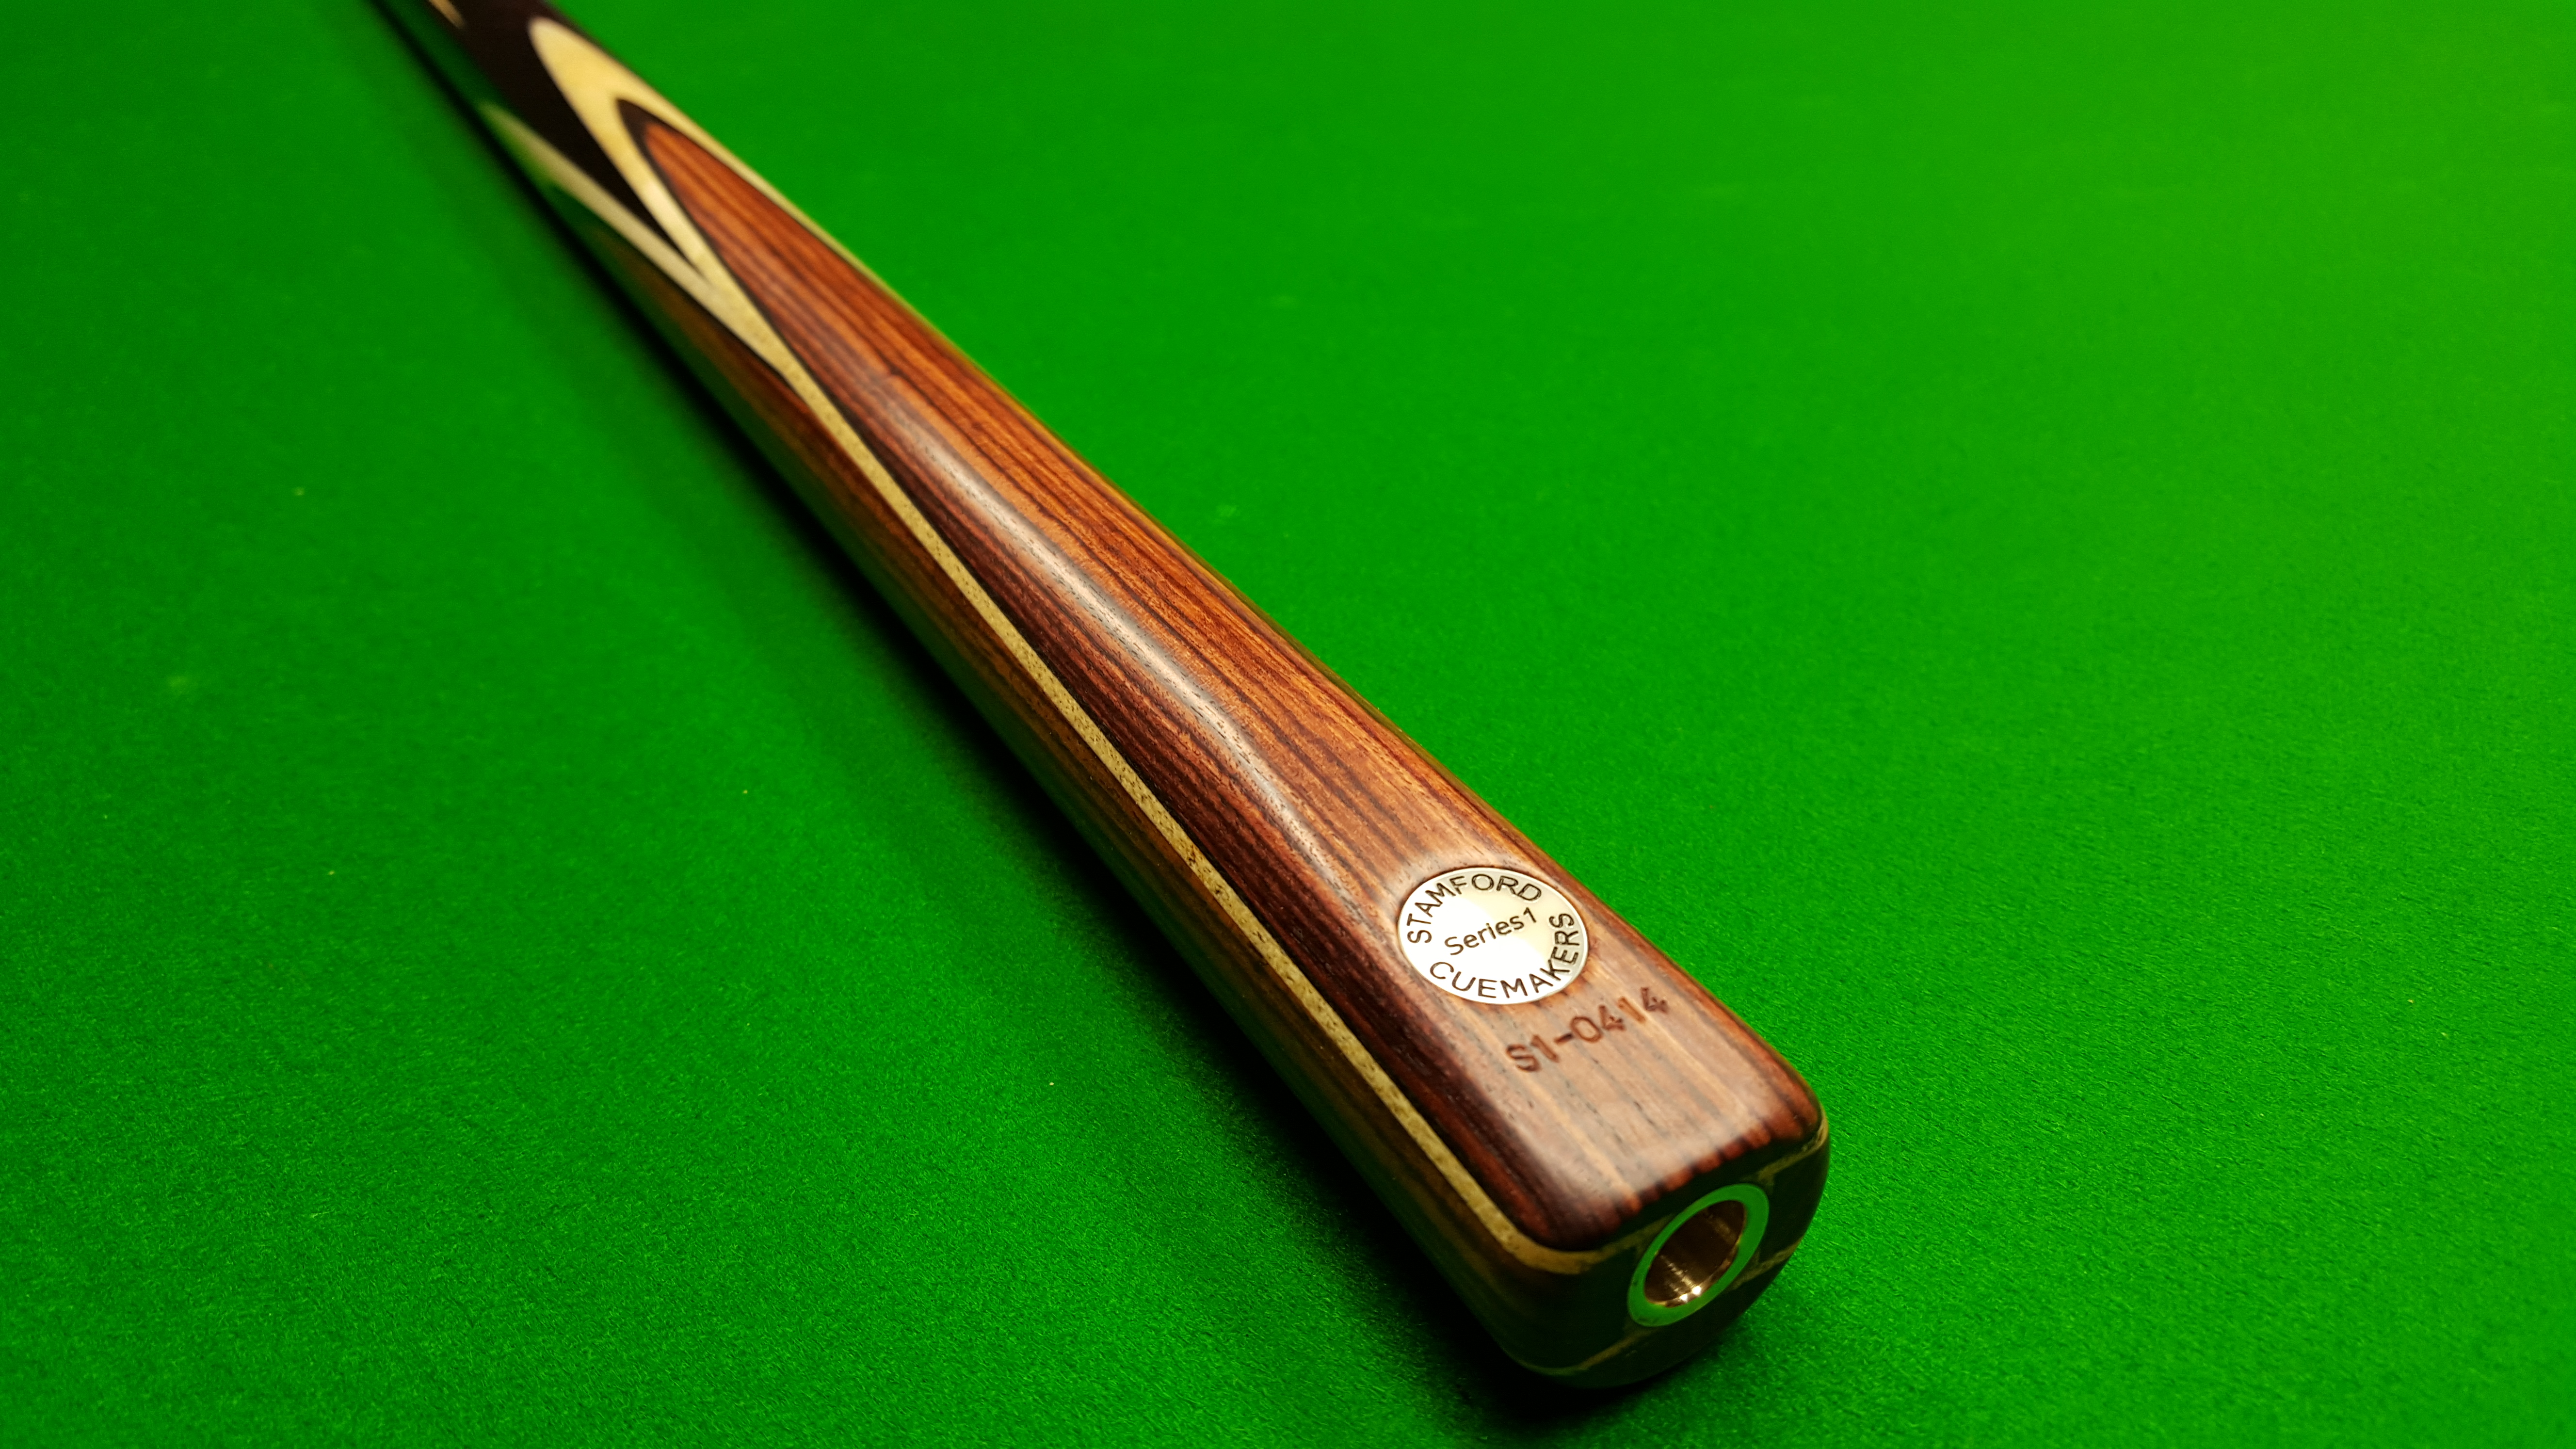 Series 1 Kingwood cue